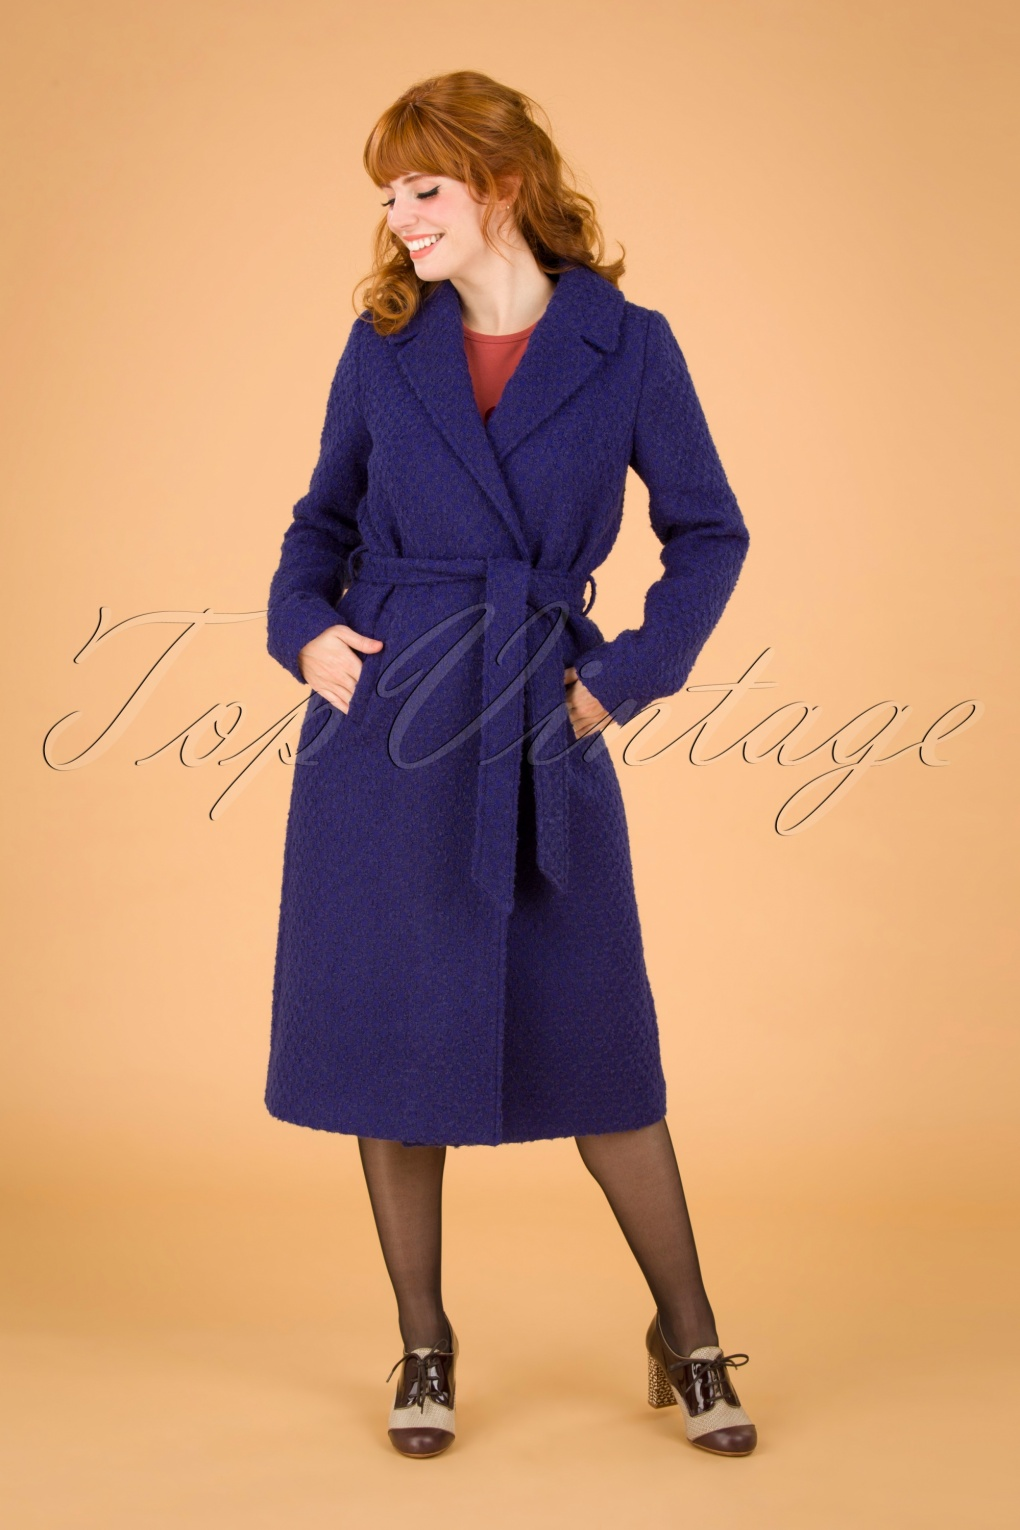 1950s Jackets, Coats, Bolero | Swing, Pin Up, Rockabilly 60s Robin Ottawa Coat in Dazzling Blue £178.61 AT vintagedancer.com